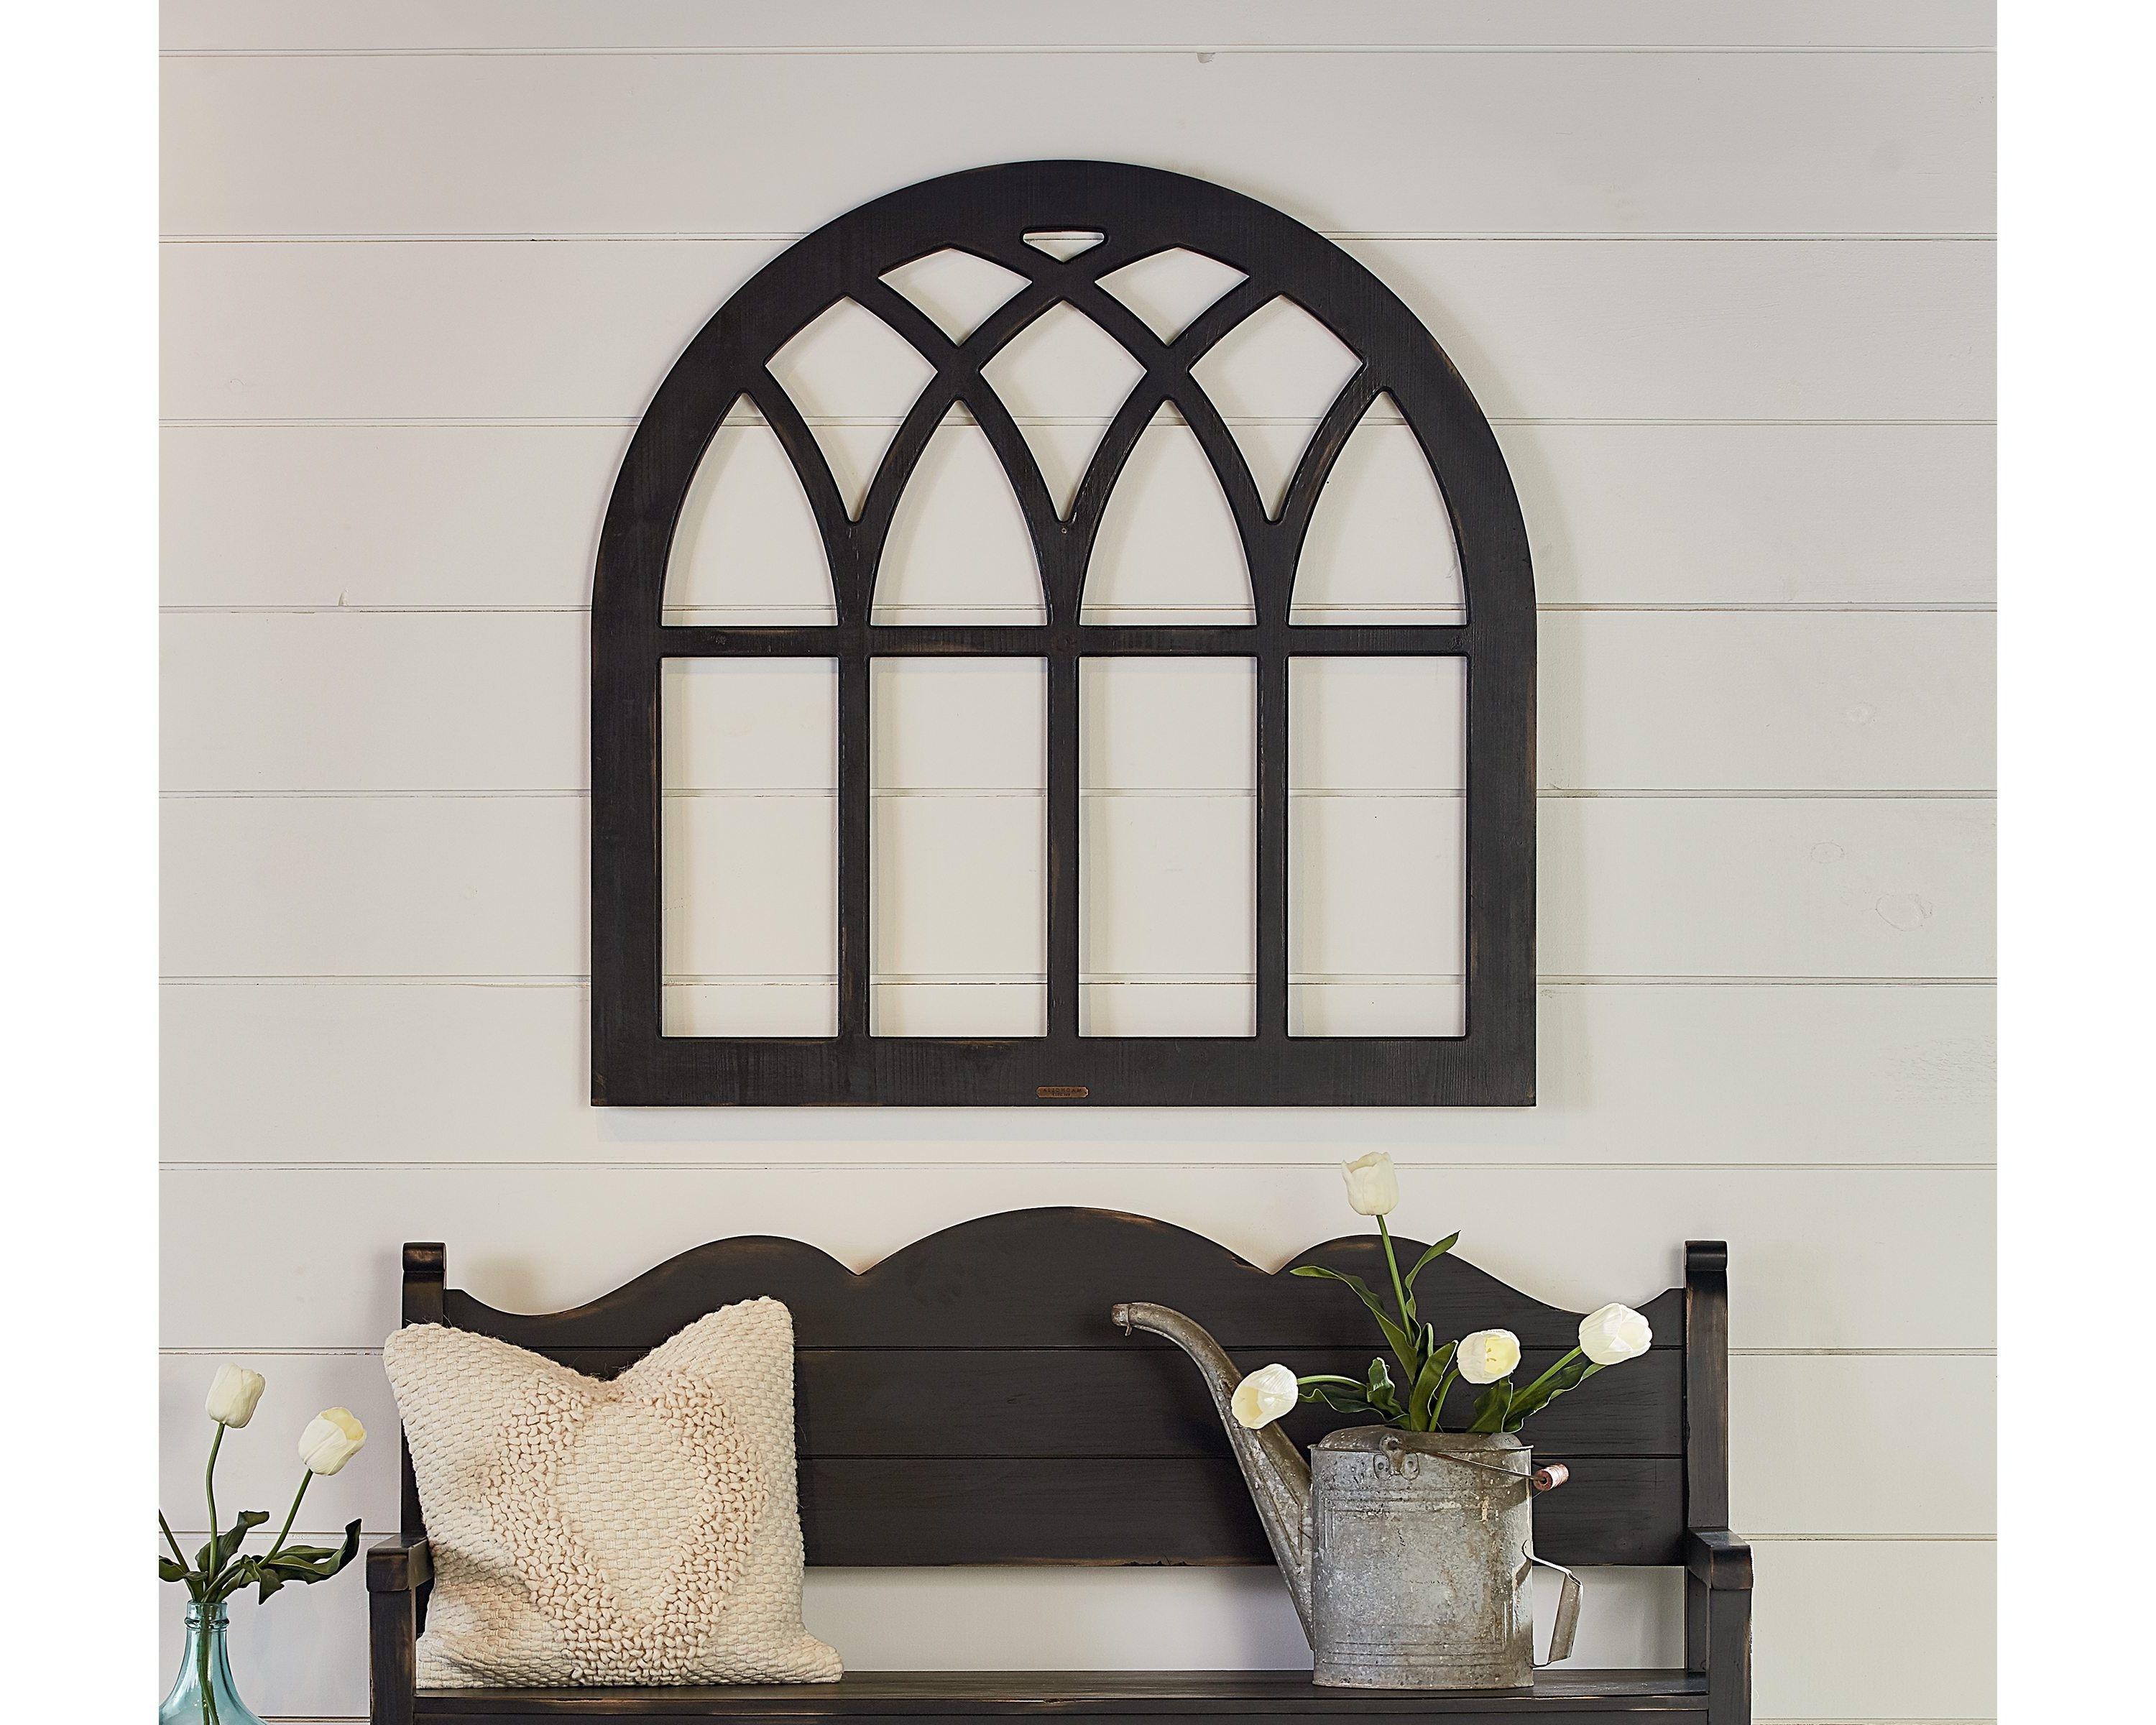 Widely Used Window Frame Wall Art With Regard To Cathedral Window Frame – Magnolia Home (View 11 of 15)